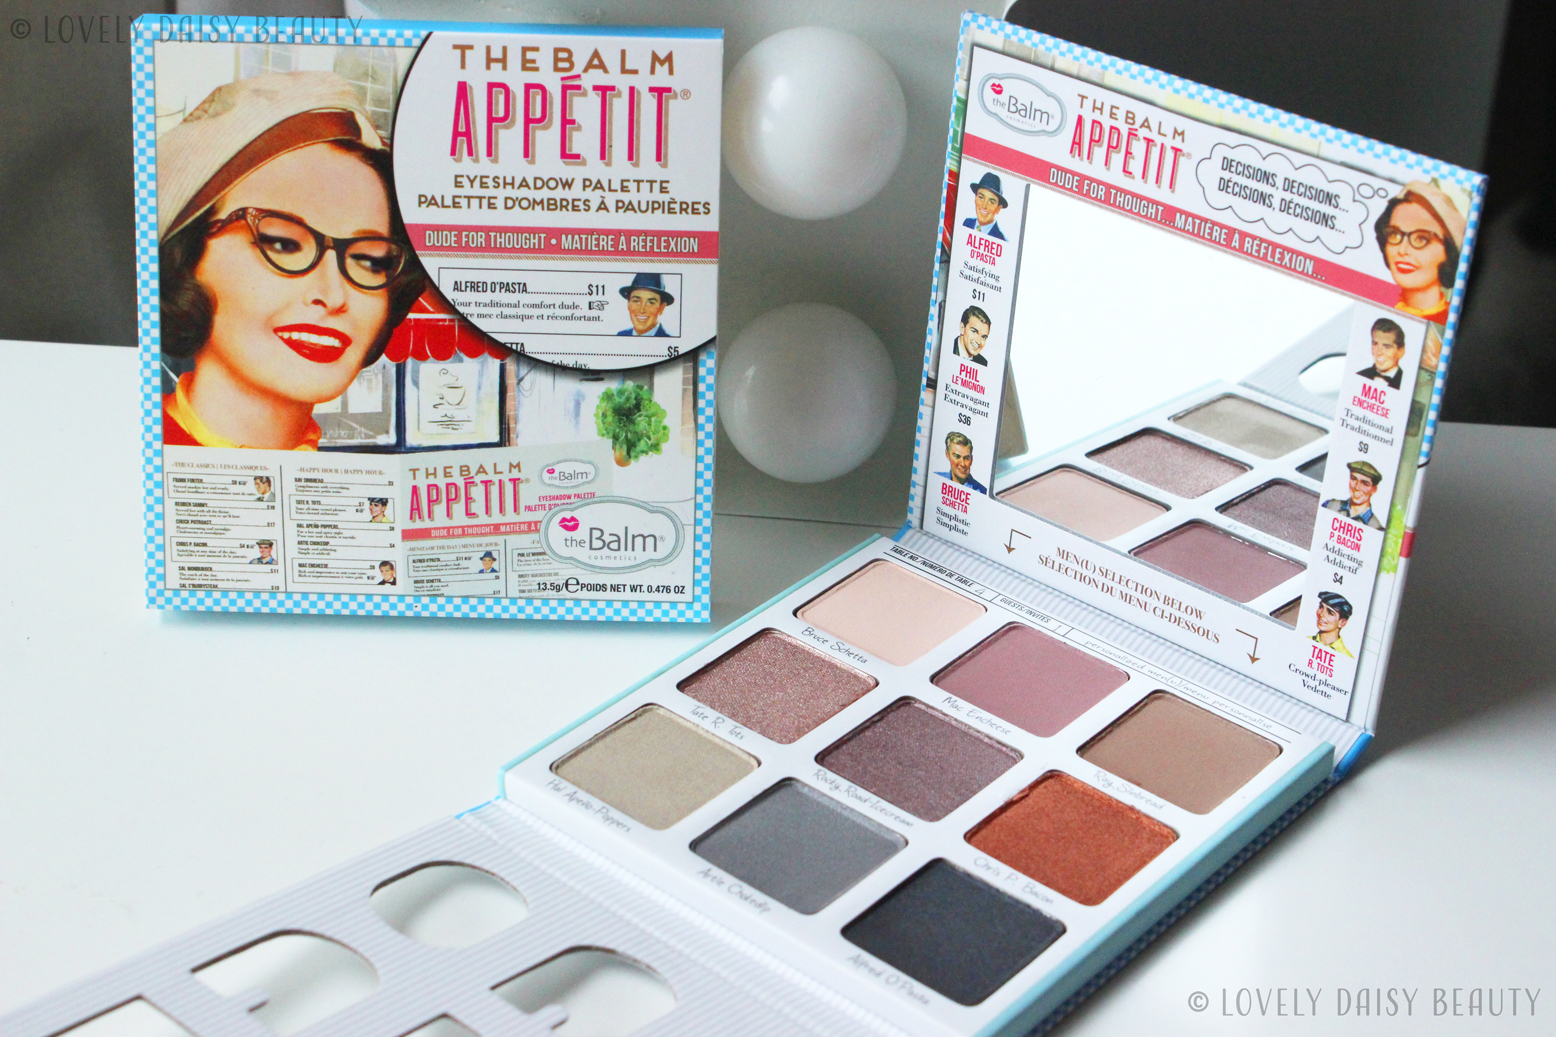 The-Balm-Appétit-Palette-7